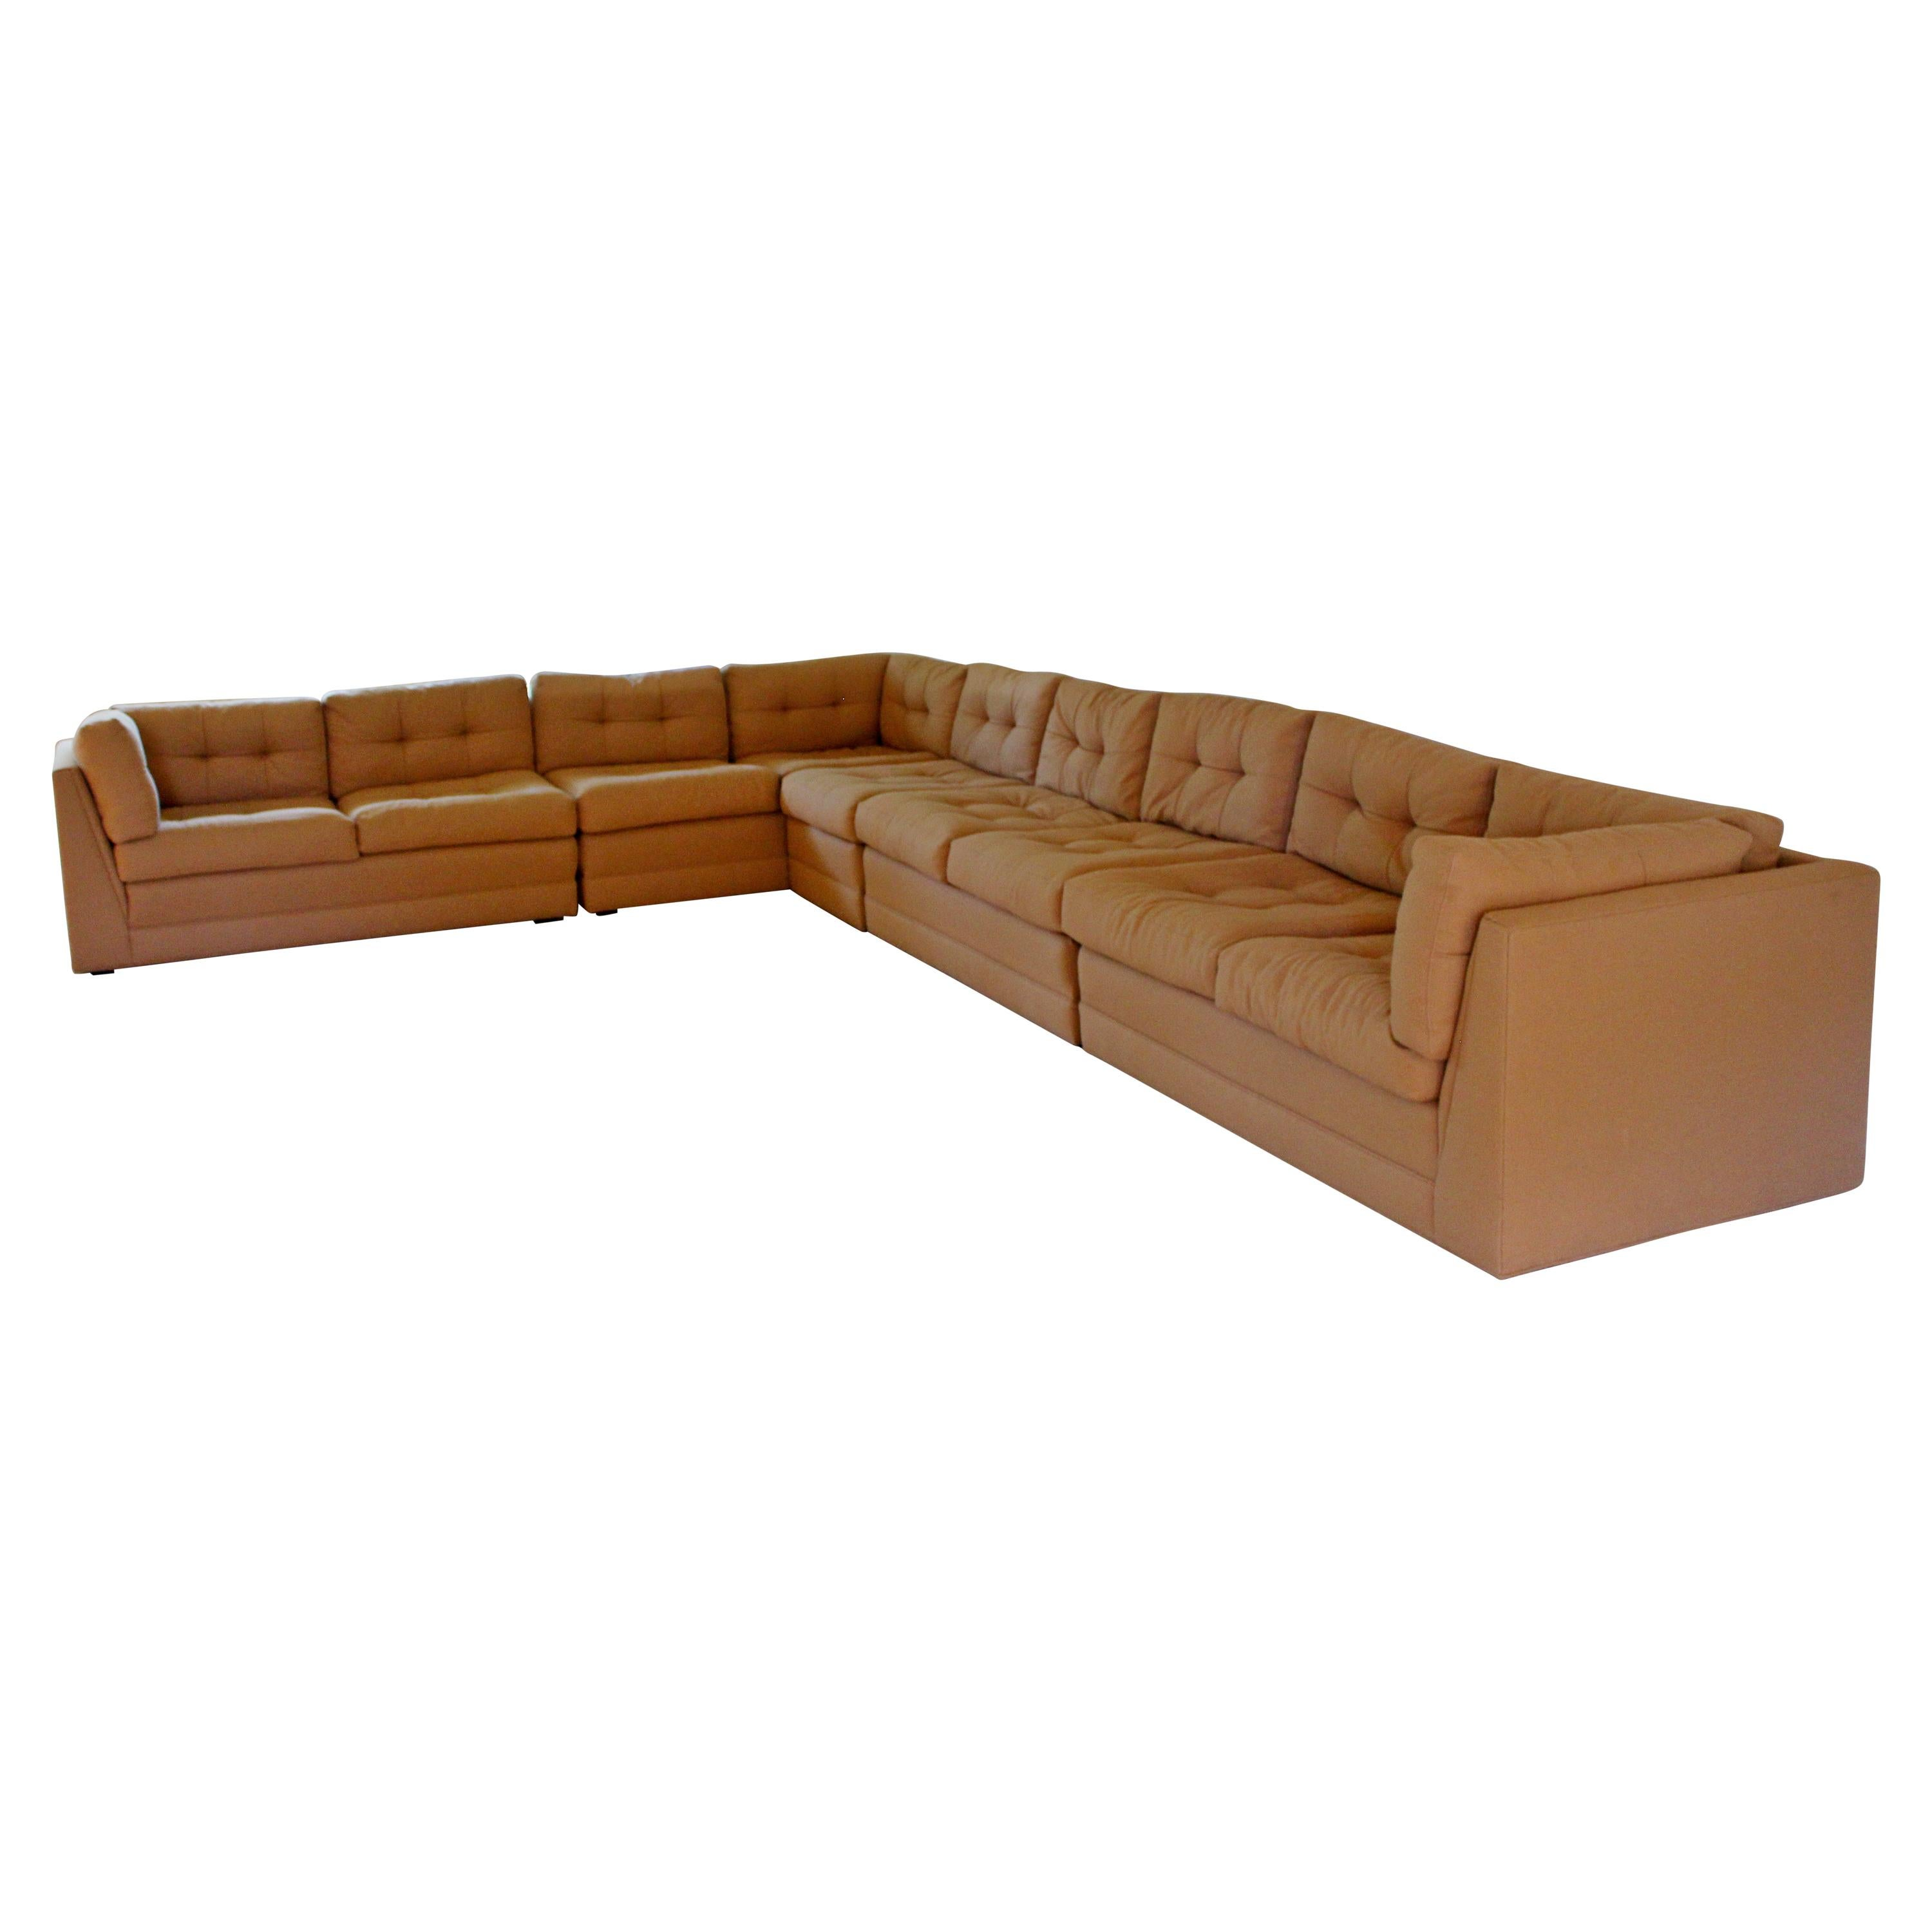 Miraculous 1980S Sectional Sofas 27 For Sale At 1Stdibs Andrewgaddart Wooden Chair Designs For Living Room Andrewgaddartcom